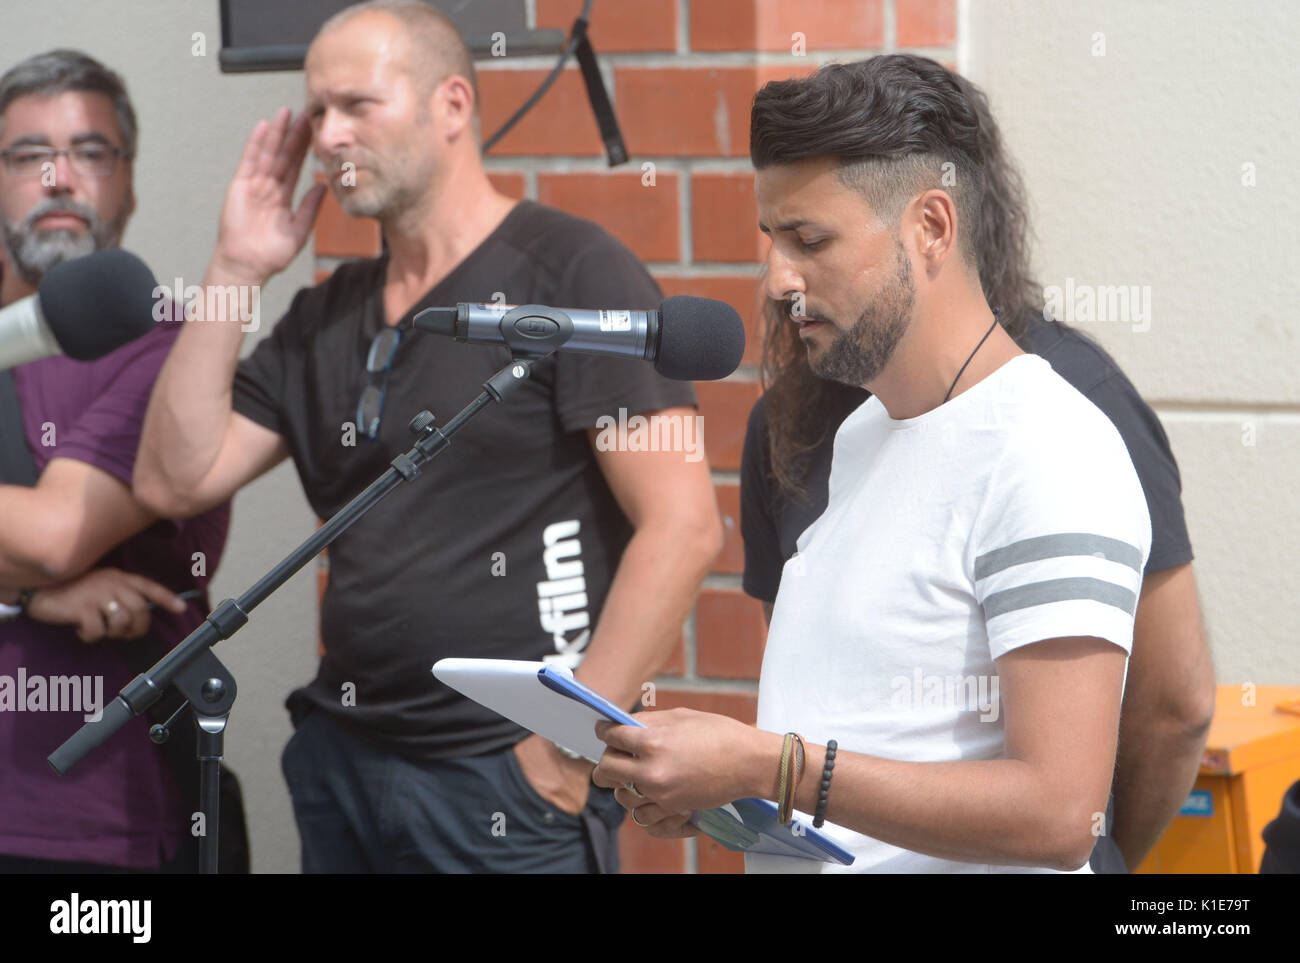 Ibrahim Arslan, survivor of the arson attack in Moelln in November 1992, speaks during the unveiling of a stele in commemoration of the racist riots in Rostock-Lichtenhagen in 1992 in front of the apartment block 'Sonnenblumenhaus' in Rostock, Germany, 26 August 2017. The memorial is titled 'Selbstjustiz' (lit. 'Self Justice'). In August 1992, residents and neo-Nazis had spent several days attacking and commiting arson at the central reception center for asylum seekers and a home of Vietnamese workers while many spectators applauded. The police was unable to control the situation. Photo: Stefa - Stock Image